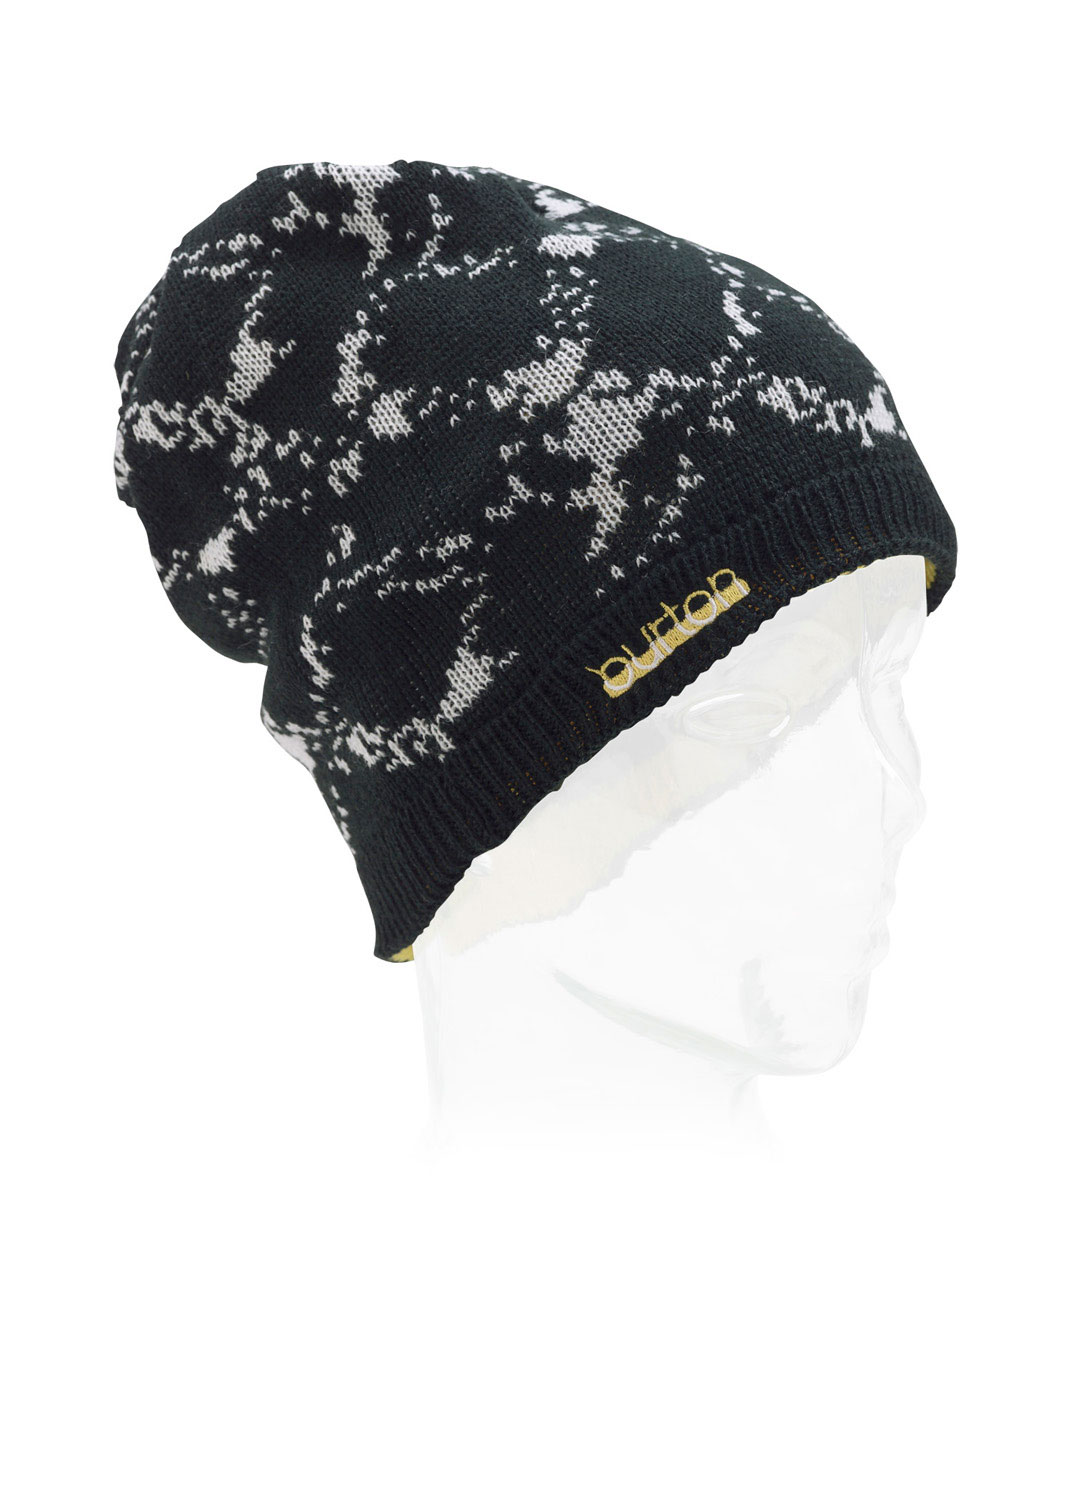 "Snowboard Ladies! This sexy Burton Miko Beanie is made just for you. You are going to love the soft knit feel that will help ward off ""hat hair"", and the discontinued colors add intrigue and style. The adjustable fit make sure that you are always warm and comfortable in your Burton Miko Beanie, regardless of what mood you're in. Another great feature is that the beanie sits low on the neck, keeping your hair out of your eyes, and aiding in keeping you warm.Key Features of the Burton Miko Beanie: 100% Acrylic Convertible Twist Beanie / Neck Warmer Slouchy to Skully Convertible Fit Reversible - $11.95"